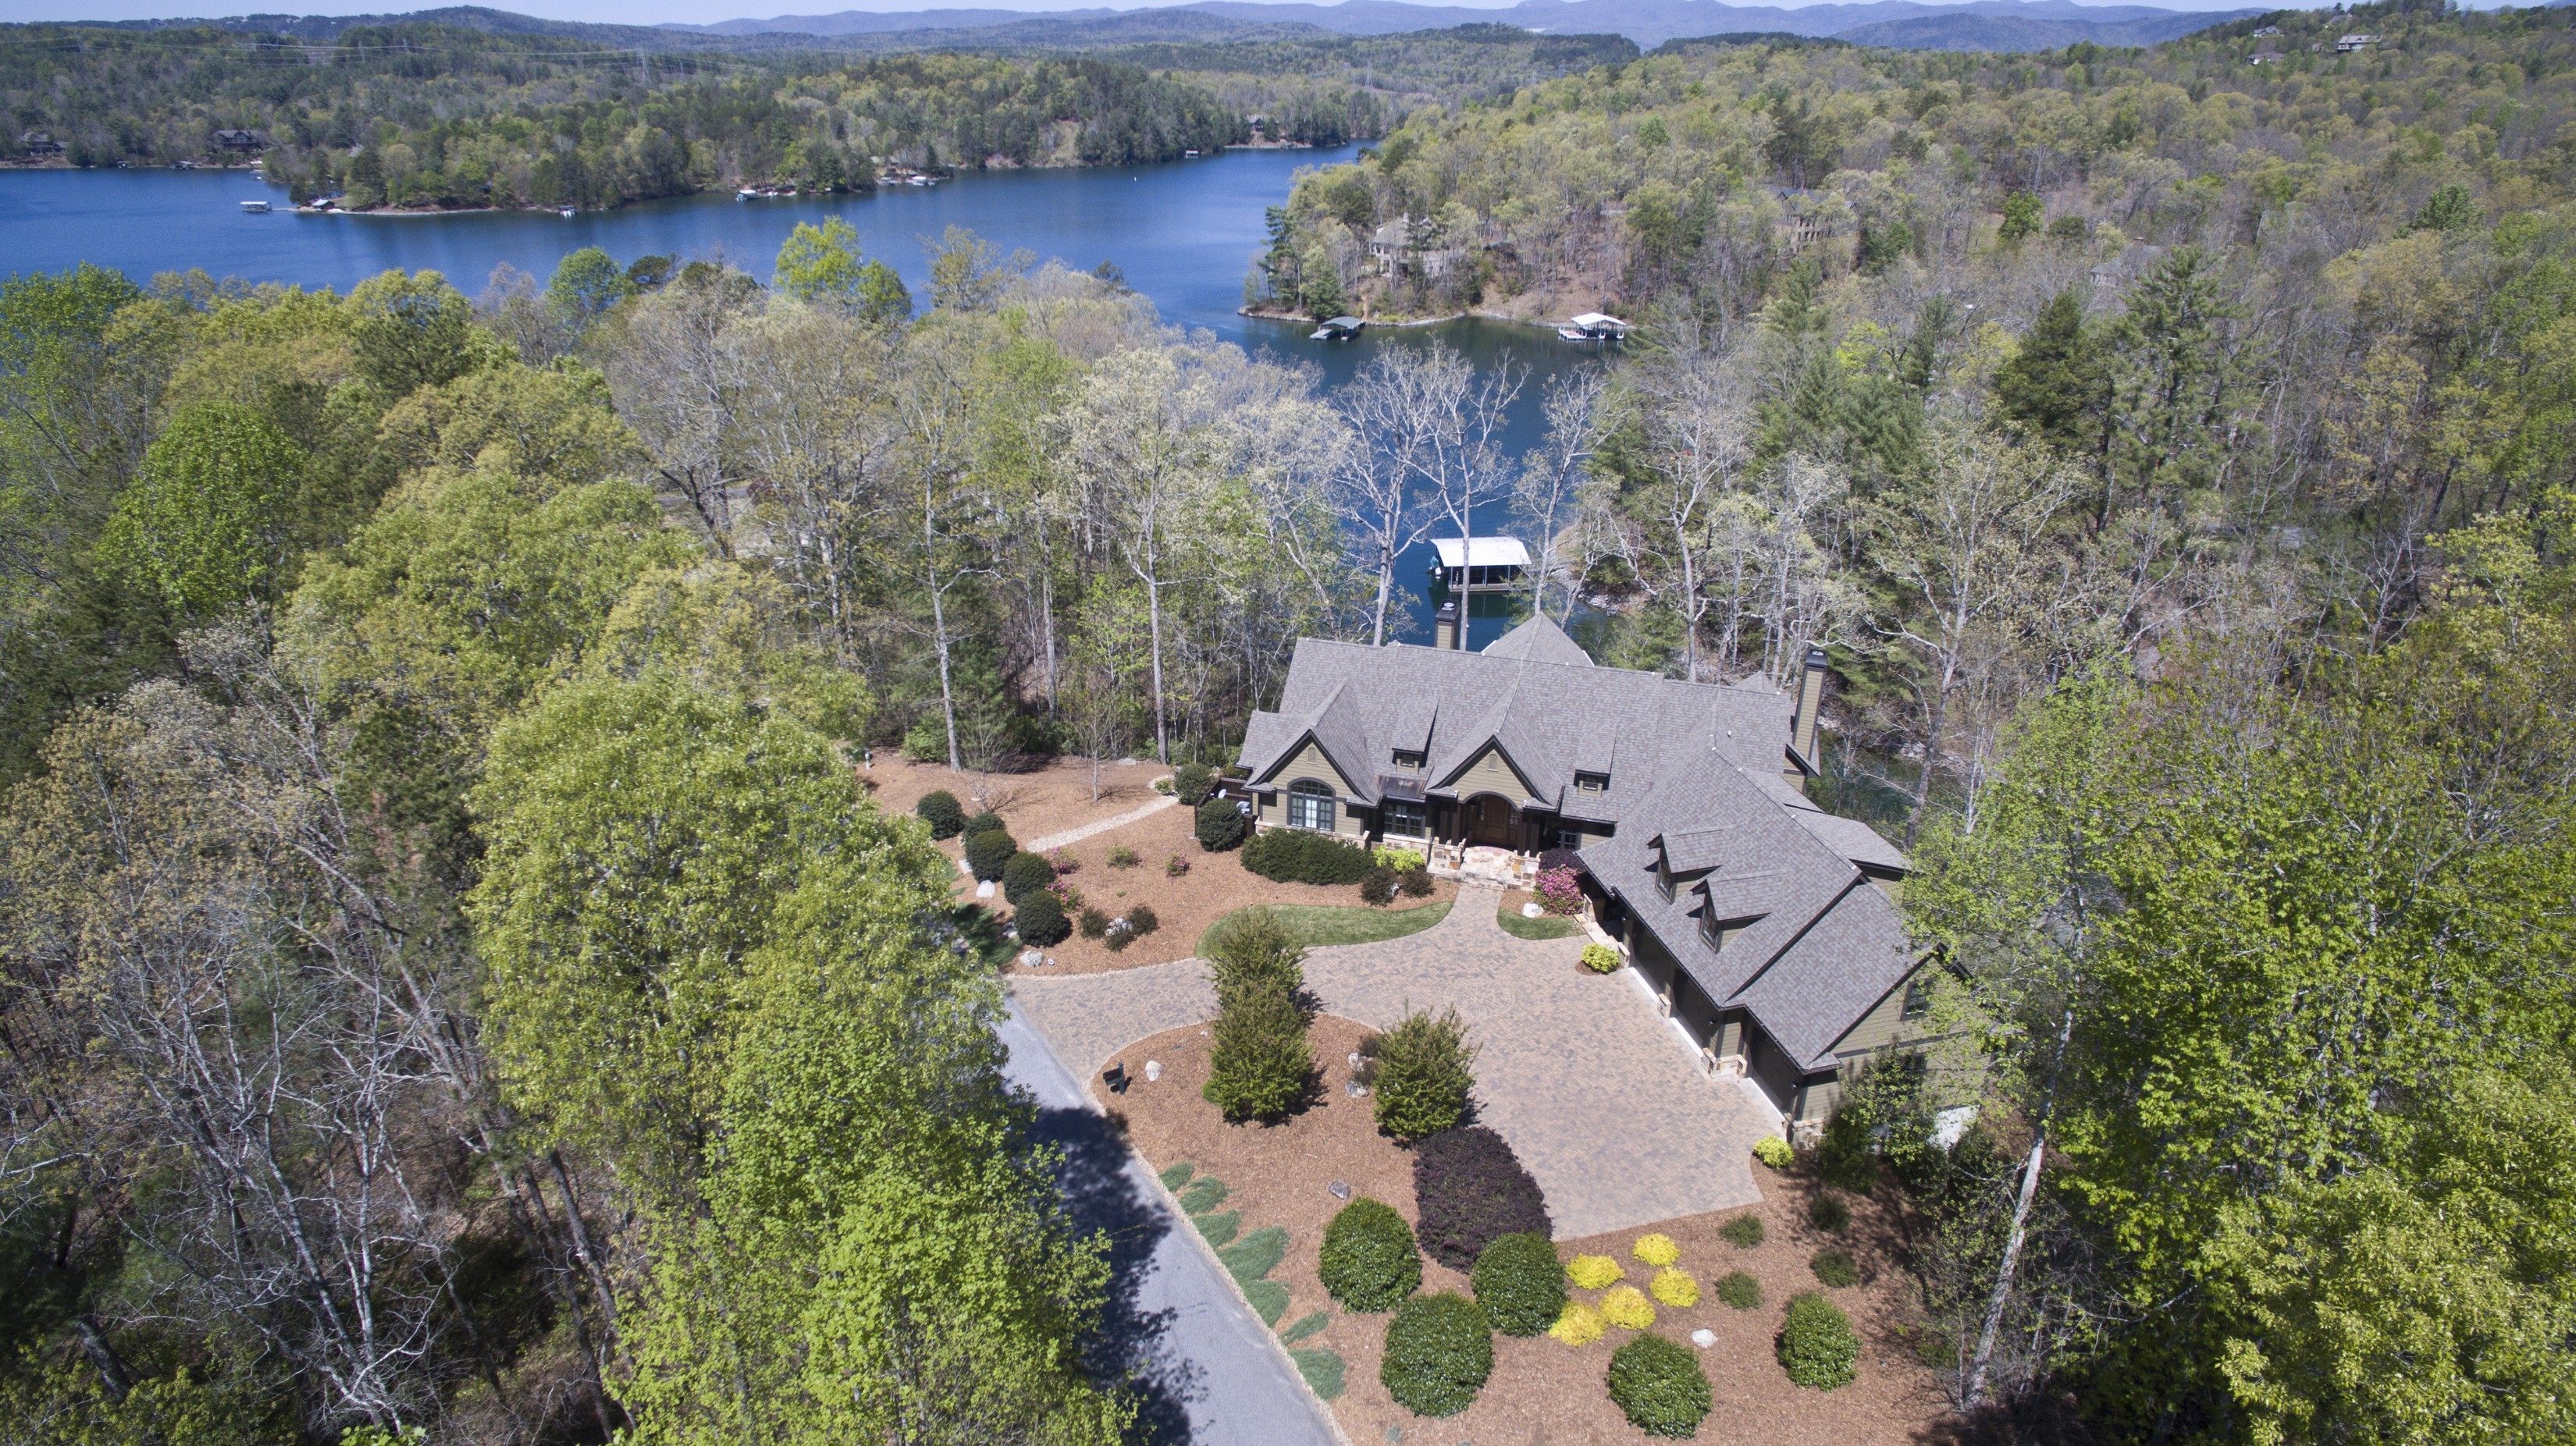 Single Family Home for Sale at Casually Elegant Vineyards Waterfront Retreat 110 Red Buckeye Trail The Cliffs At Keowee Vineyards, Sunset, South Carolina, 29685 United States